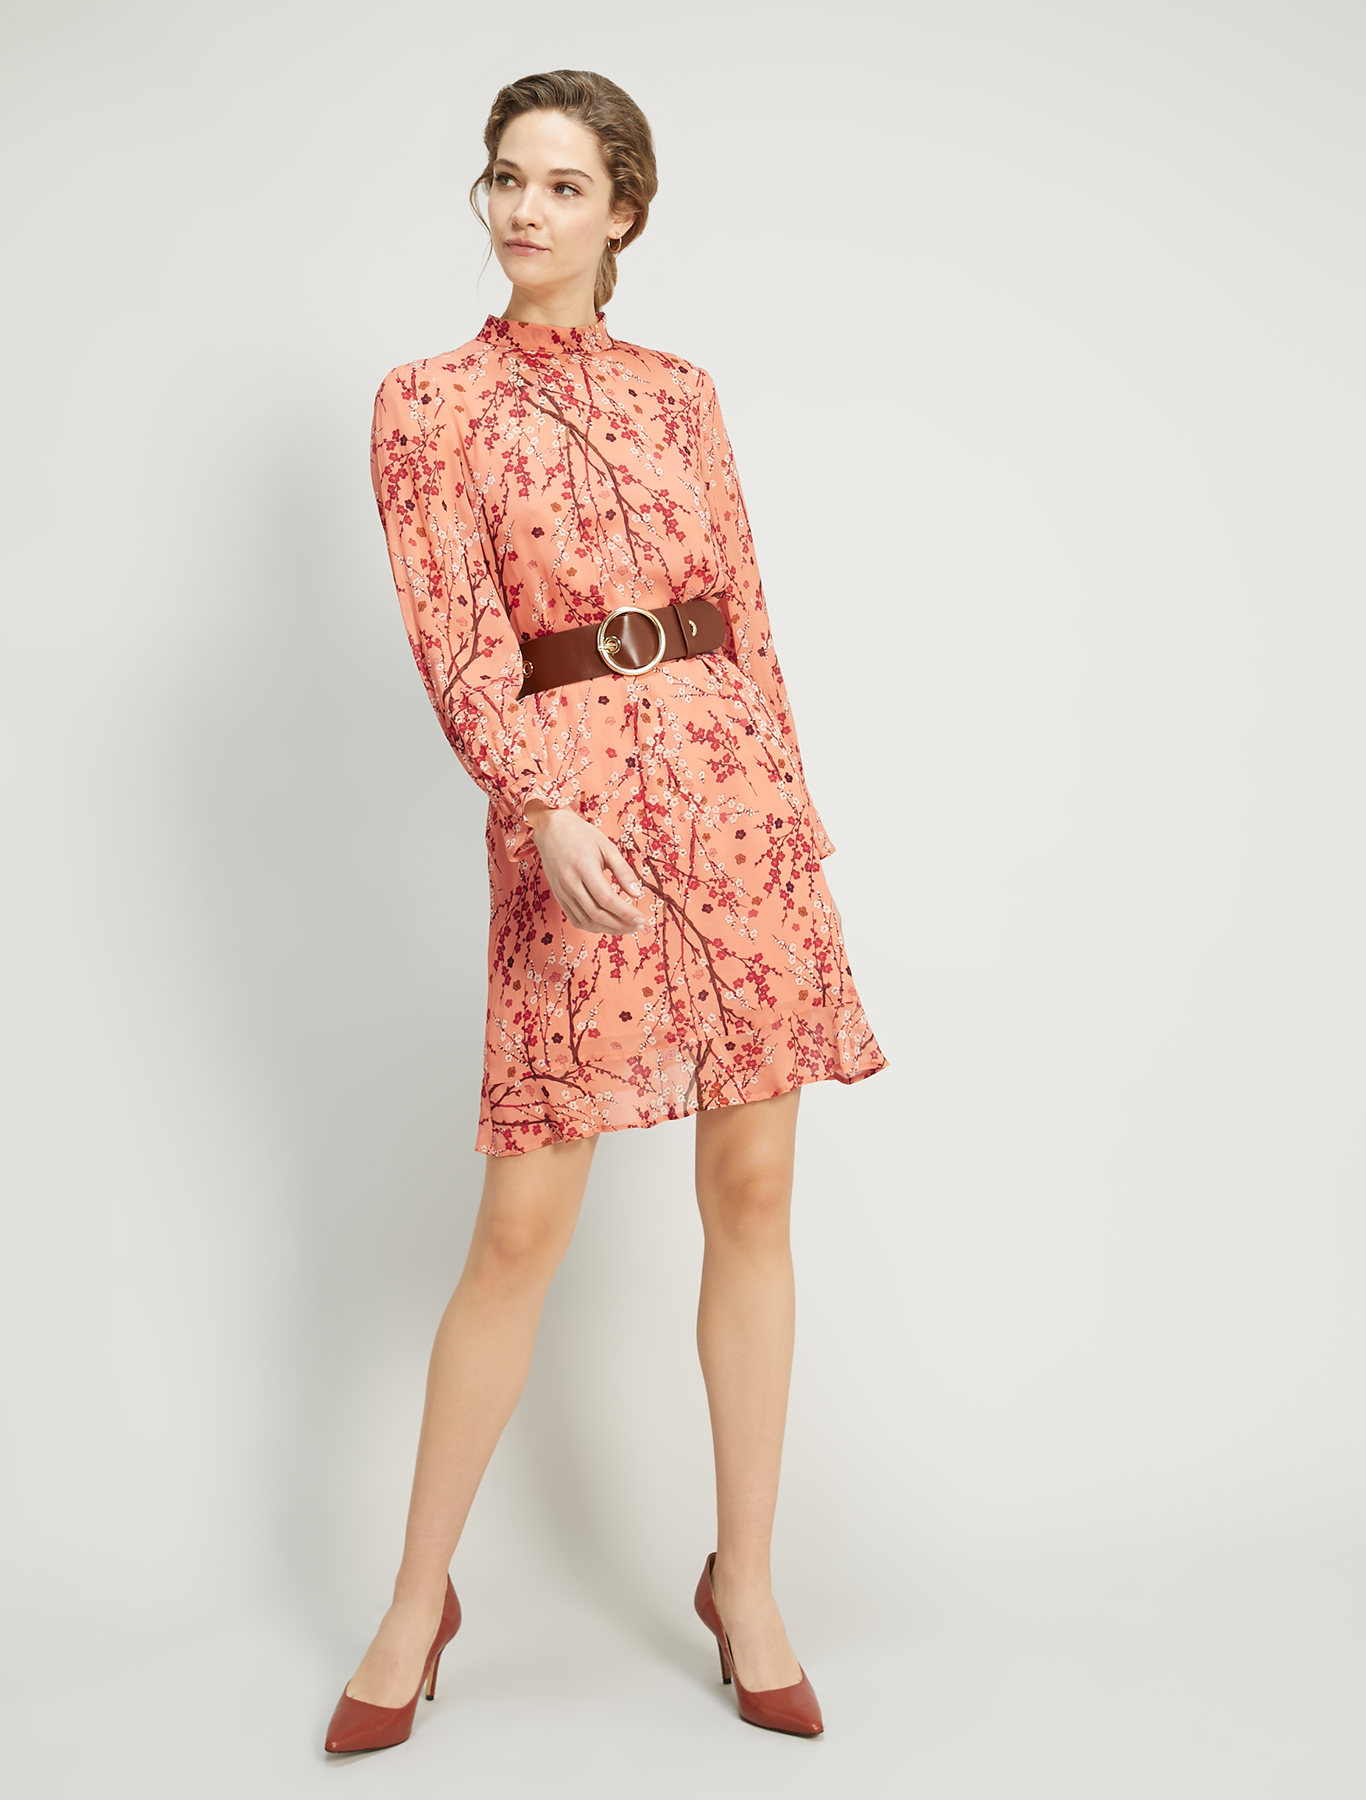 Dress in floral georgette - rose pink pattern - pennyblack